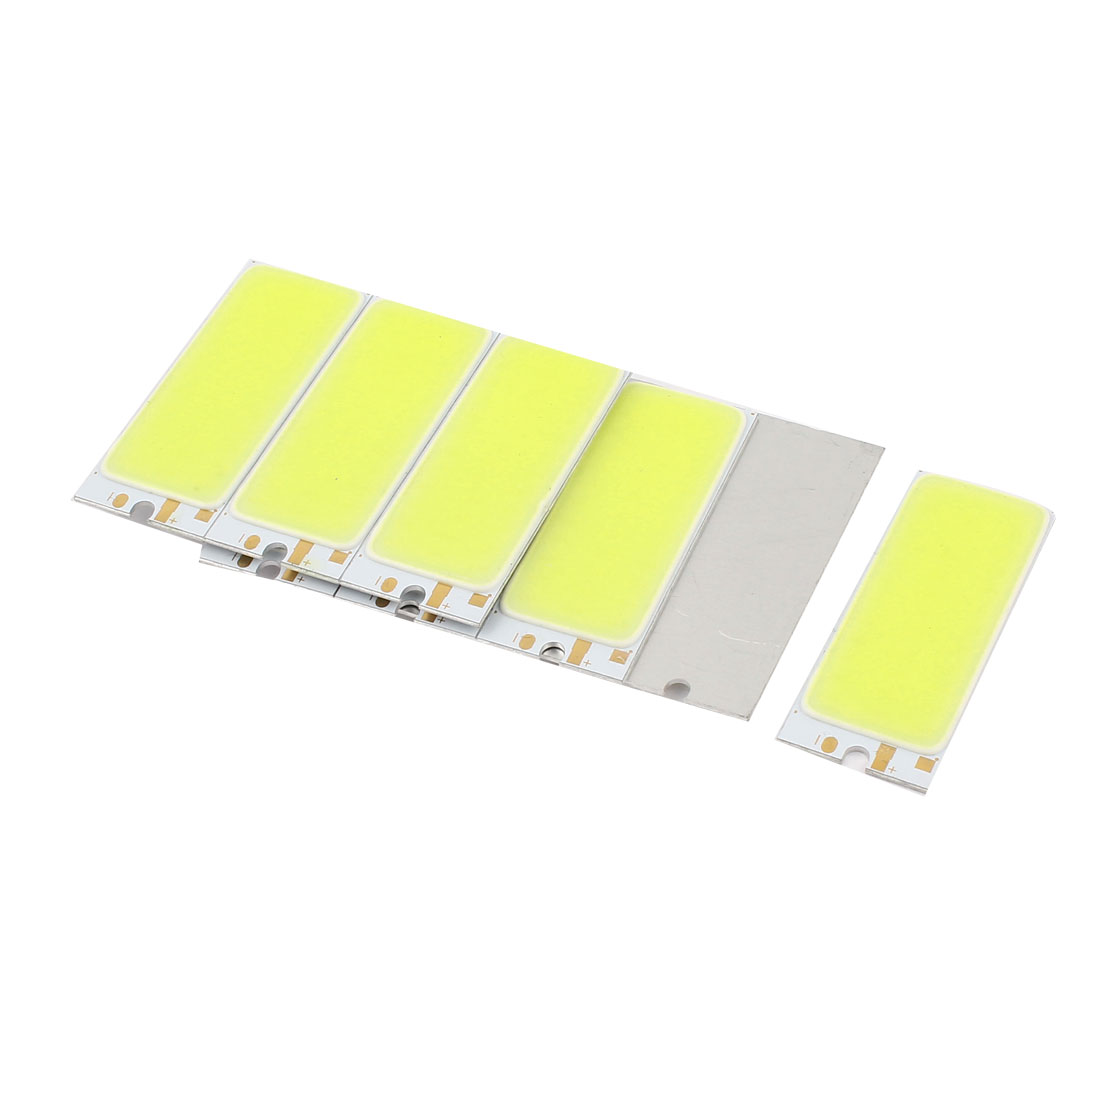 3W DC9-11V 300mA 80-90LM/W White LED Light COB Lamp Bead Chip 10pcs